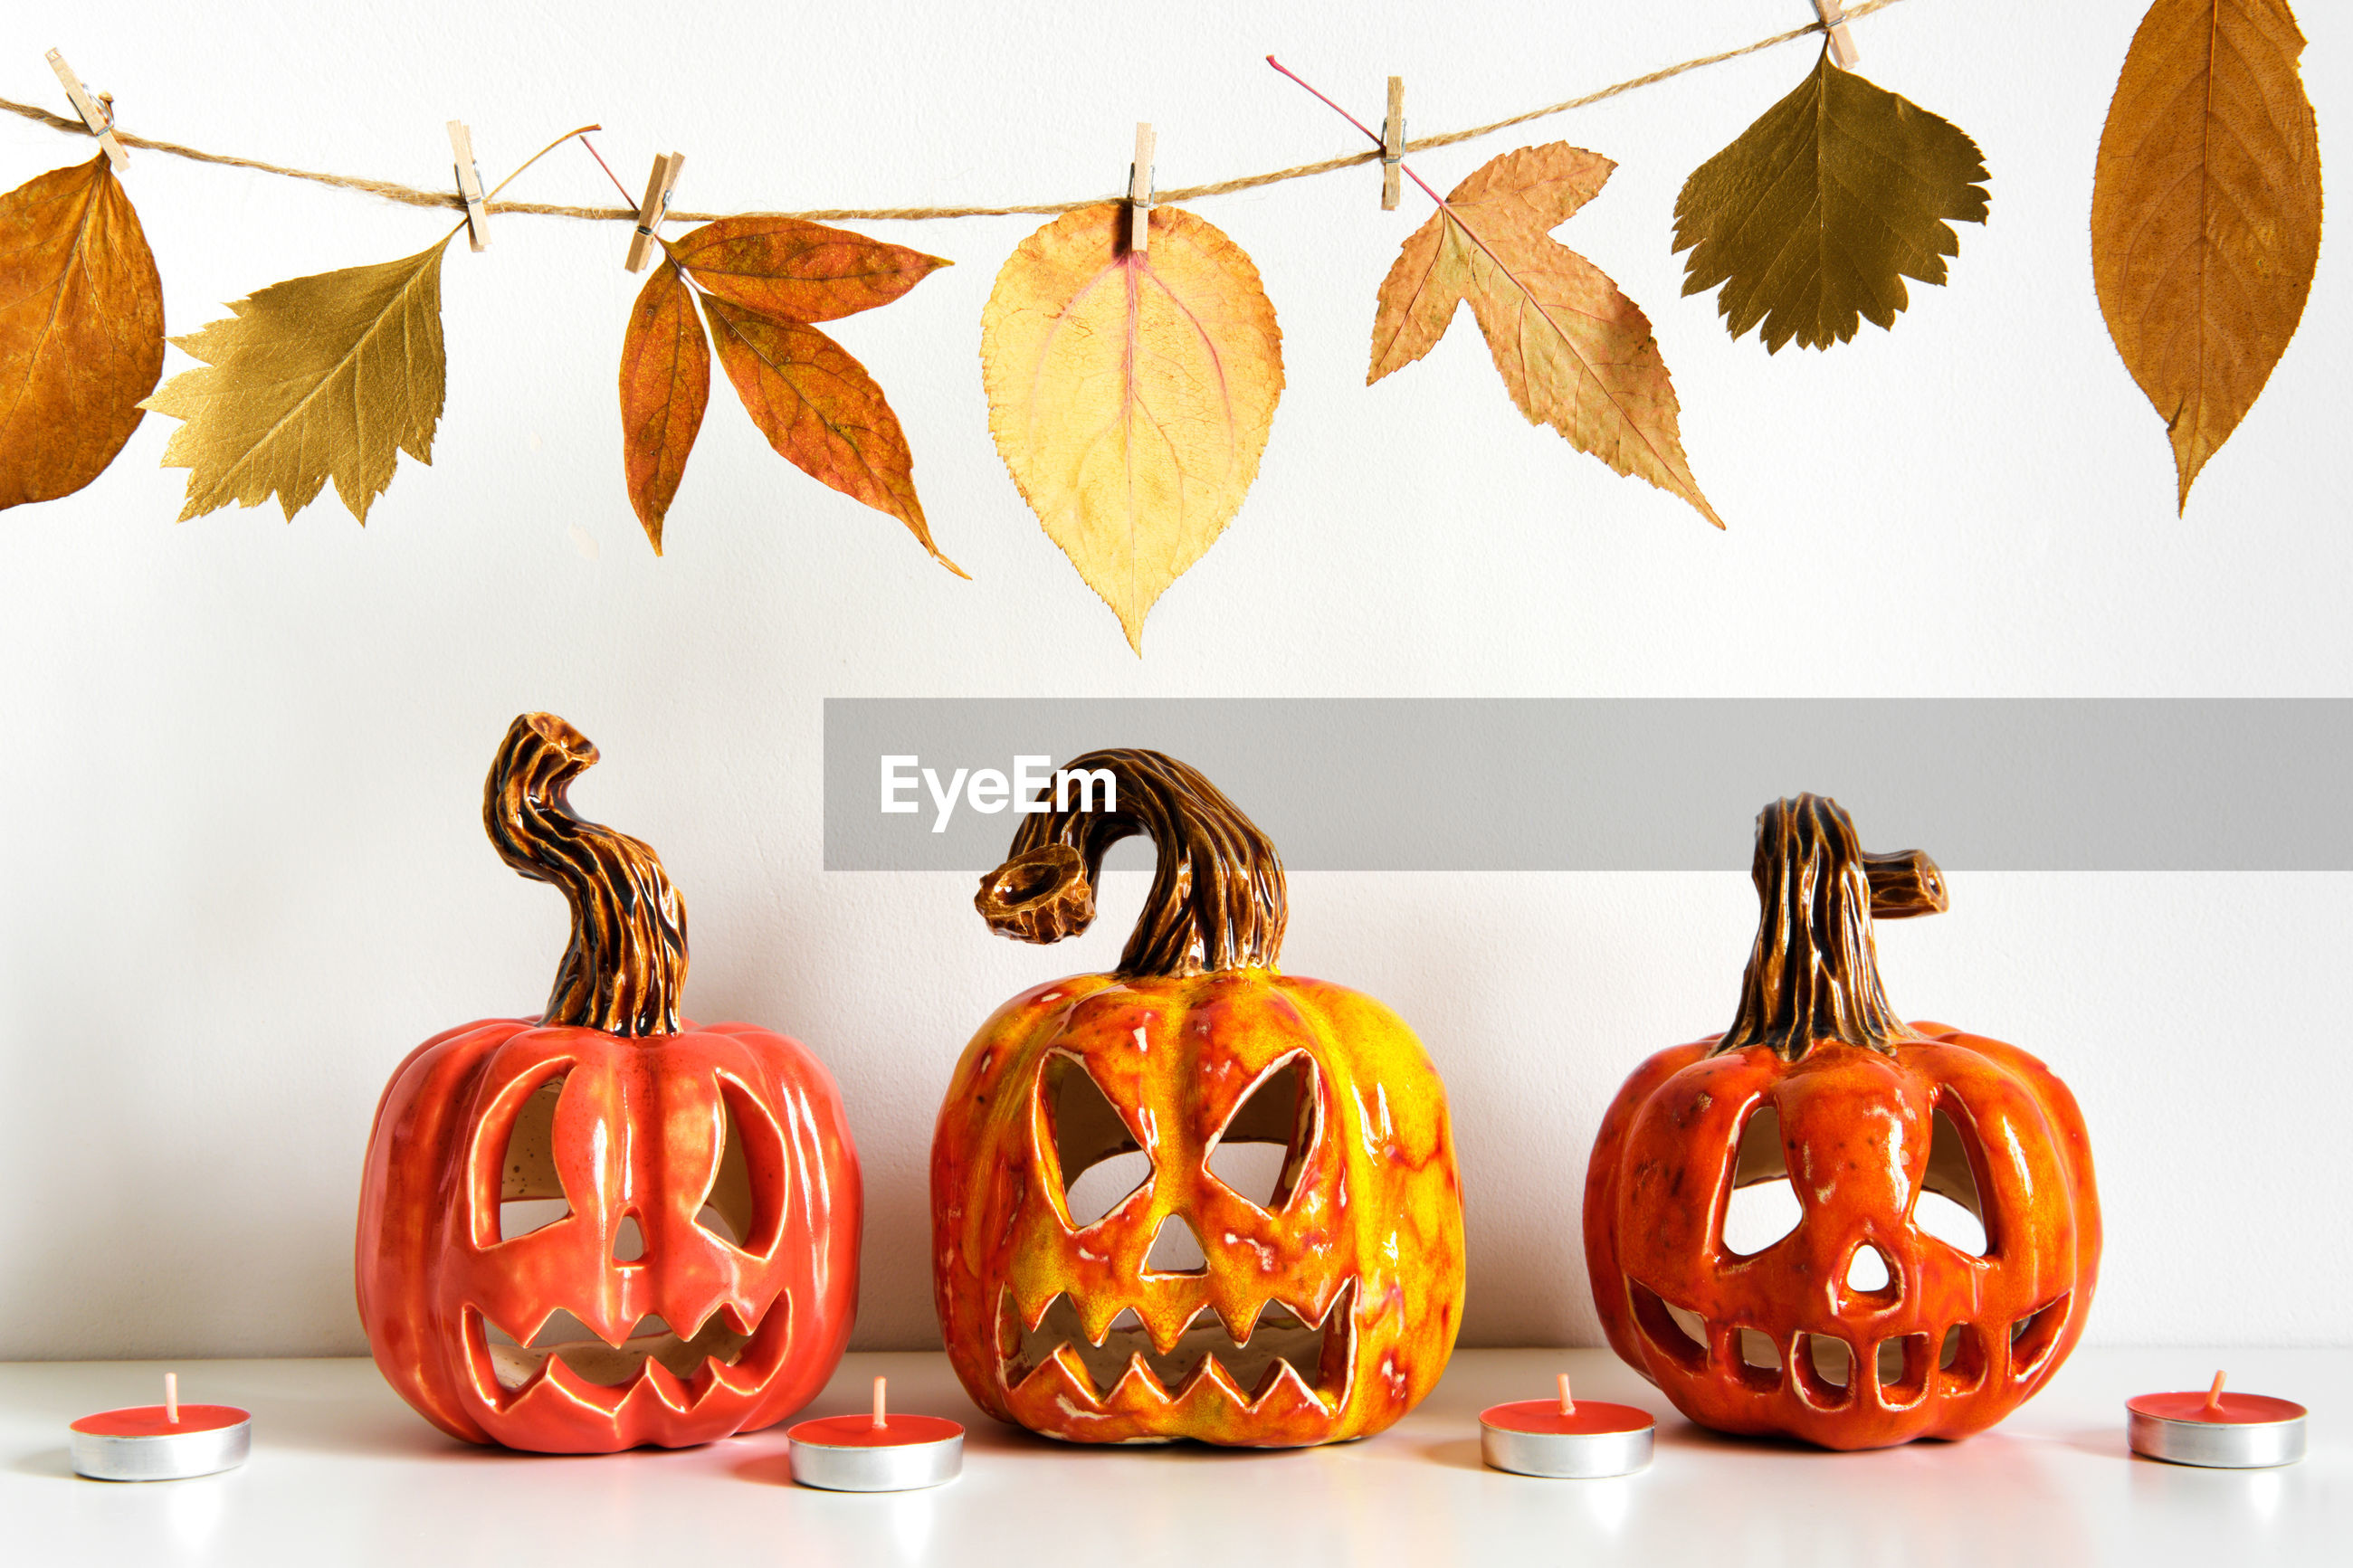 VIEW OF PUMPKINS AGAINST WHITE BACKGROUND